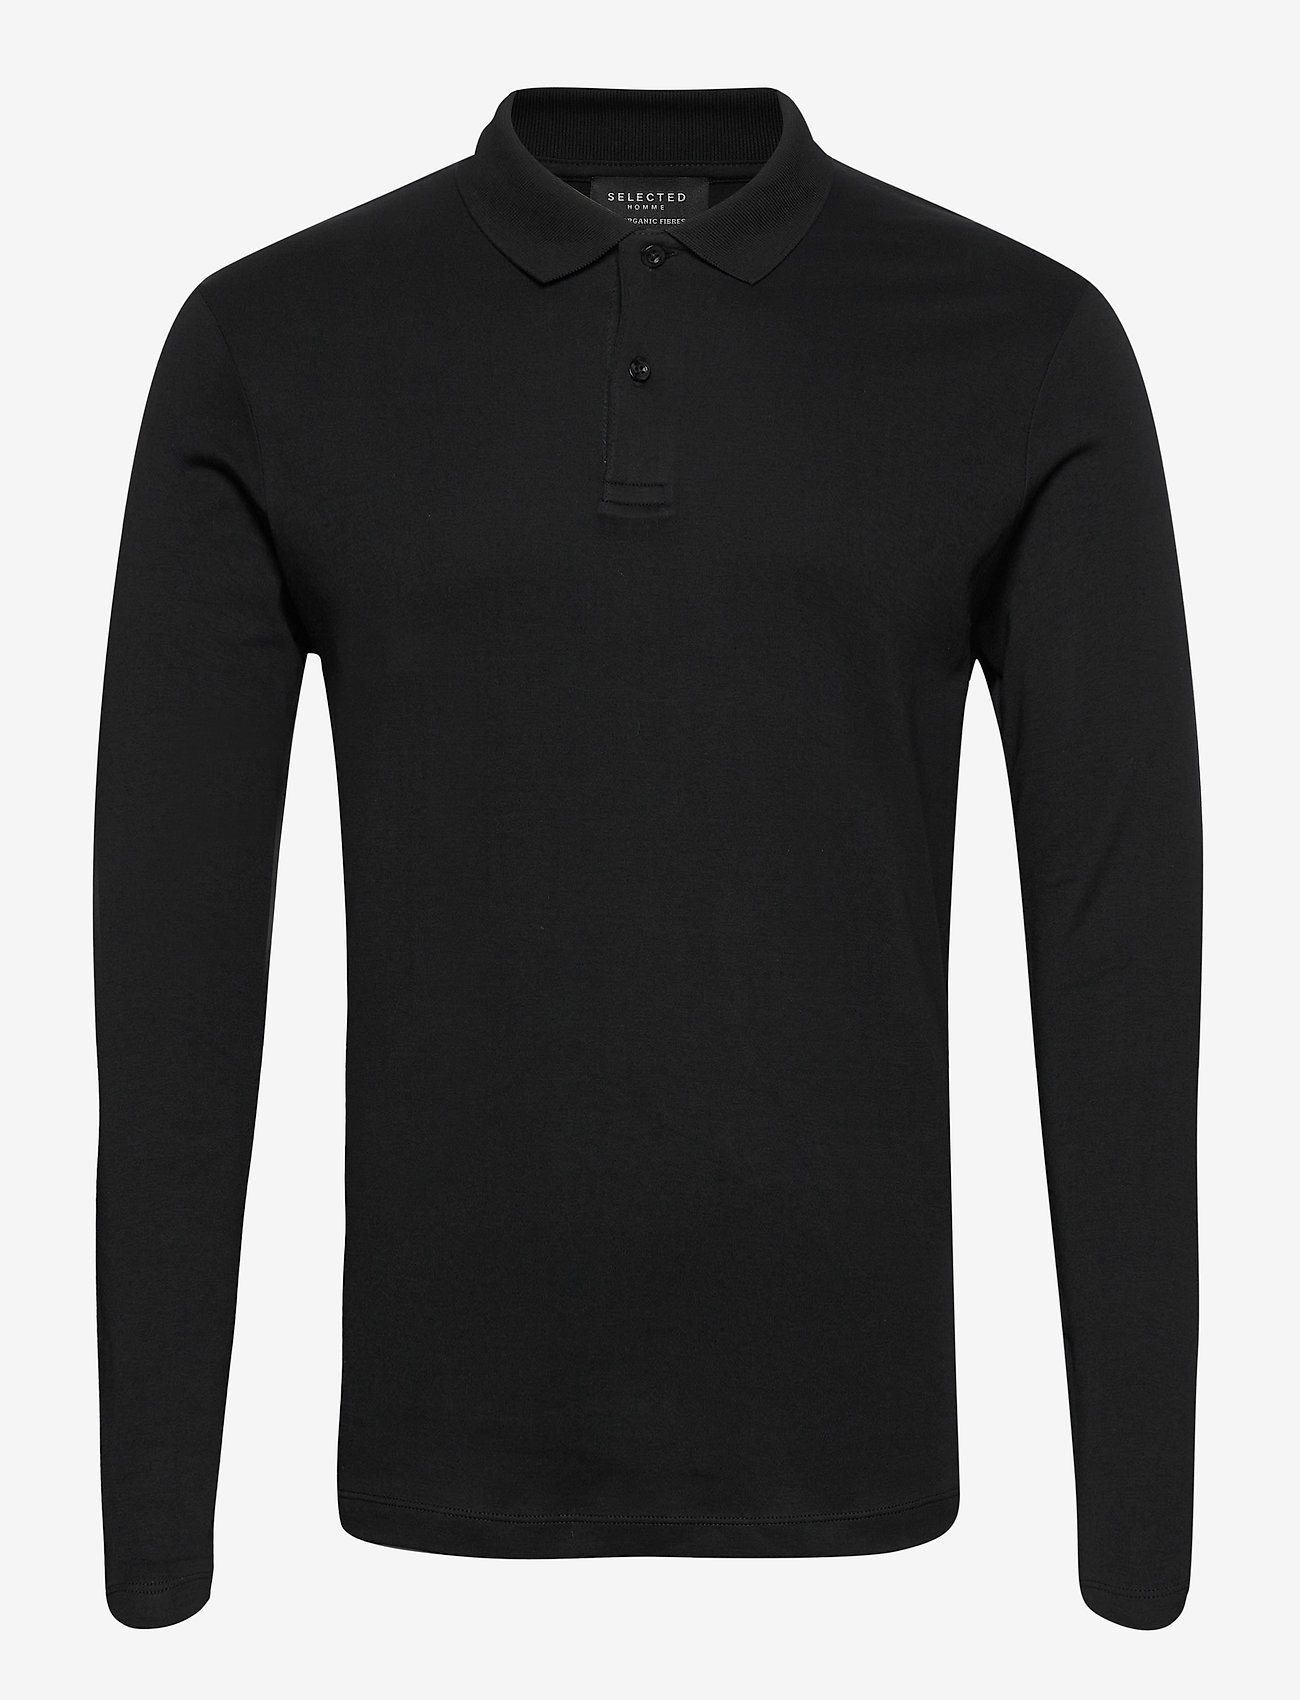 Selected Homme - SLHPARIS LS POLO B NOOS - pitkähihaiset - black - 0